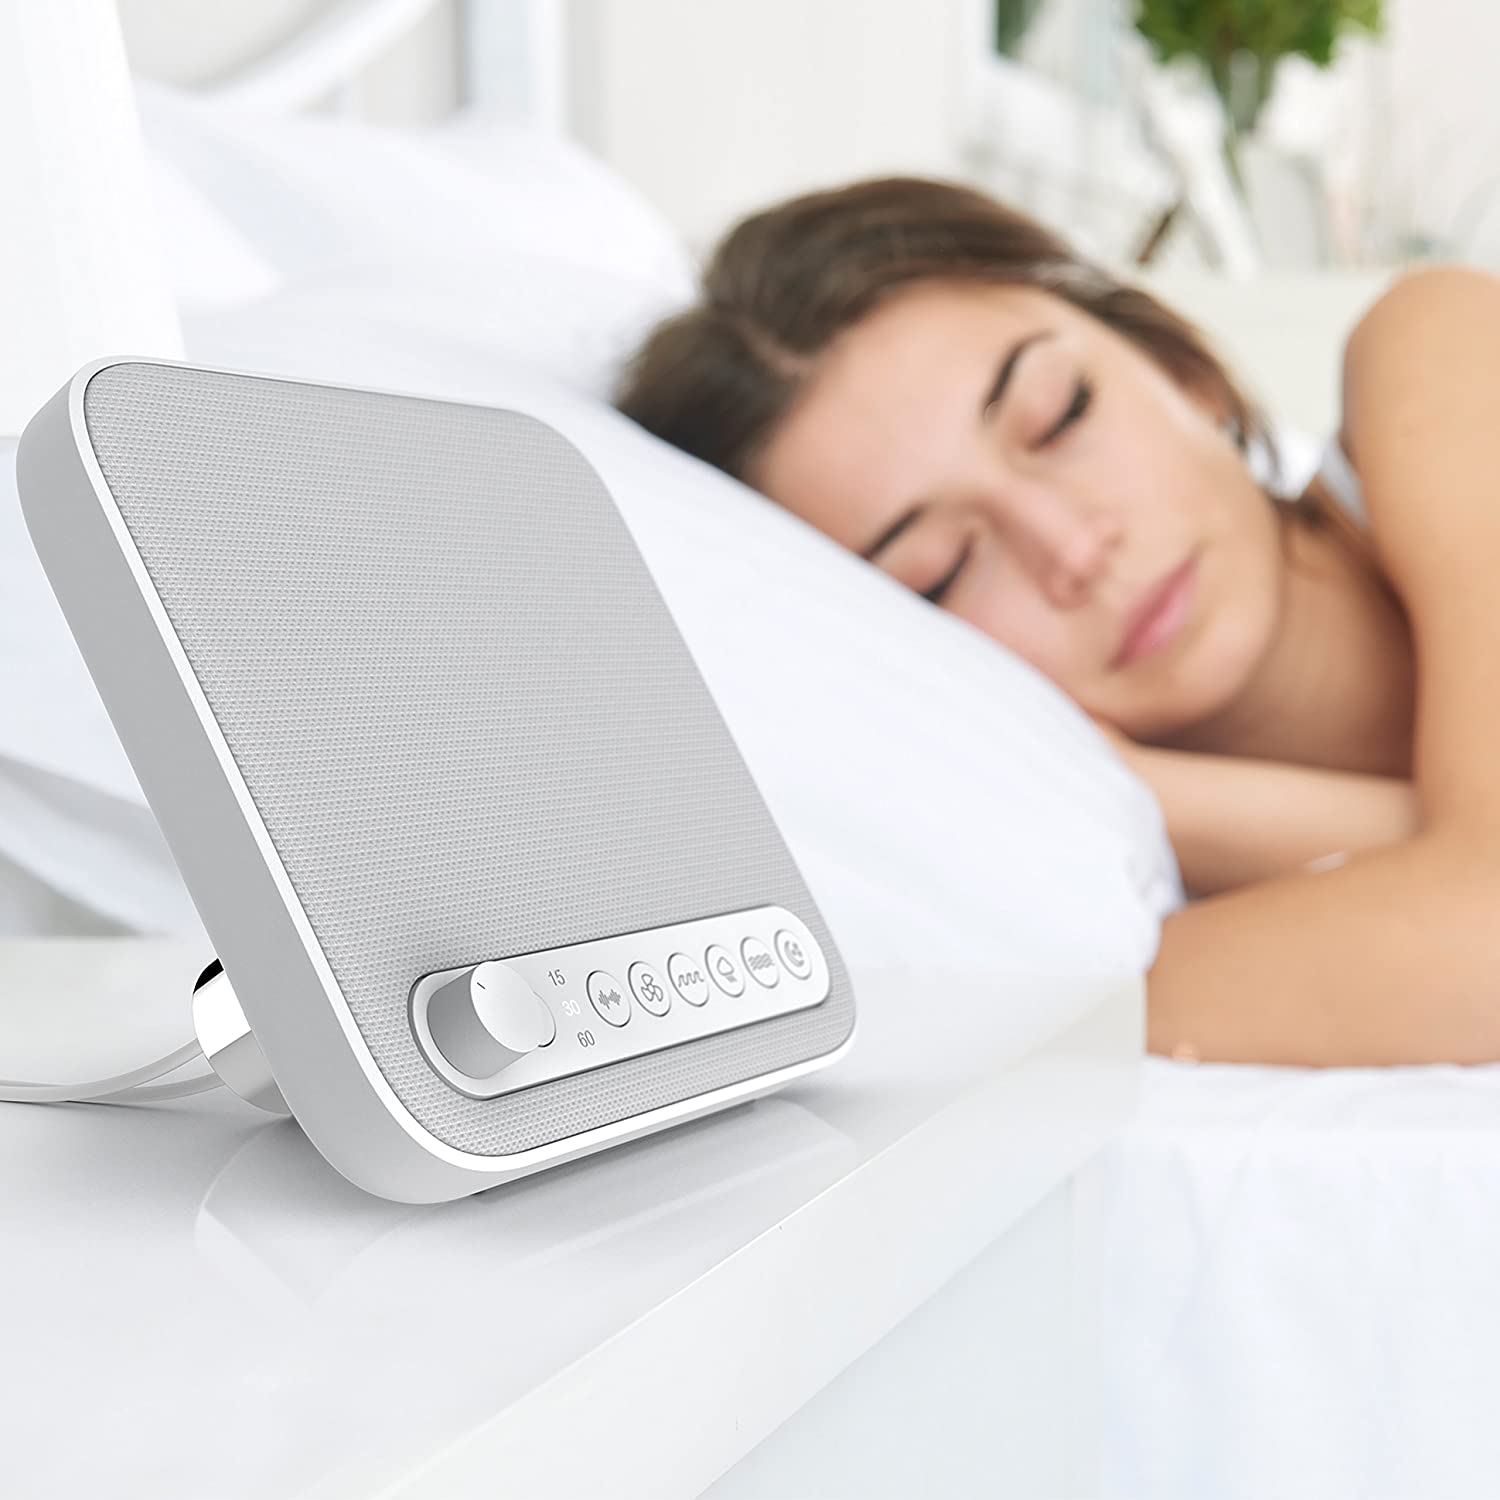 Pure Enrichment Wave Premium Sleep Therapy Sound Machine (White) - 6 Soothing All-Natural Sounds - White Noise, Fan, Ocean, Rain, Stream, Summer Night - Plus Auto-Off Timer & USB Output Charger